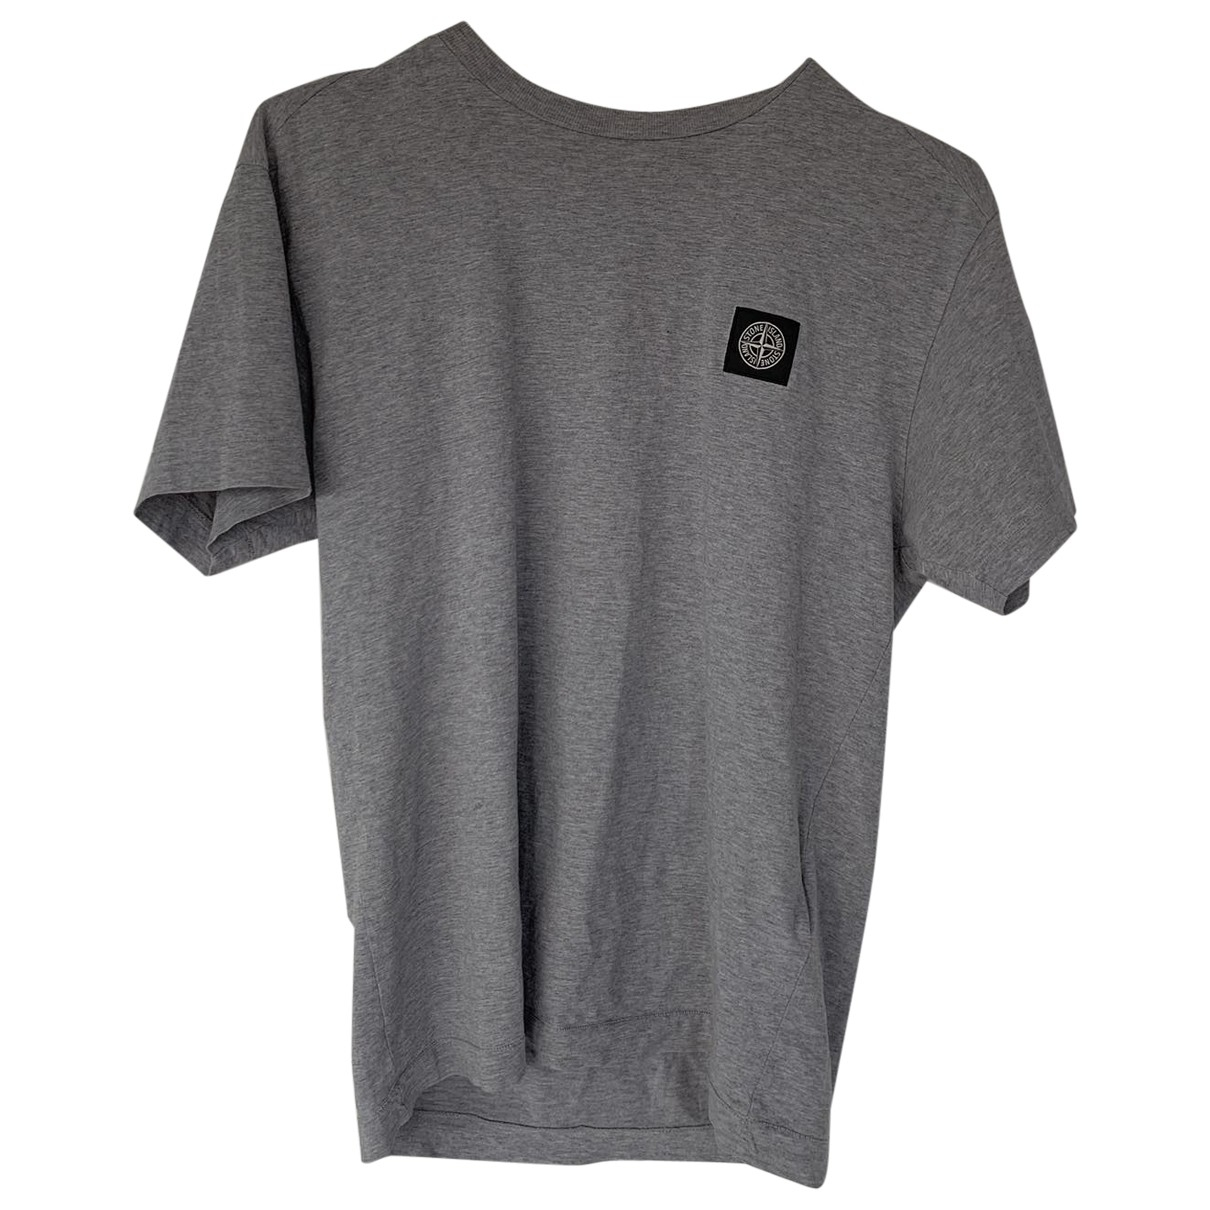 Stone Island \N Grey Cotton  top for Women S International